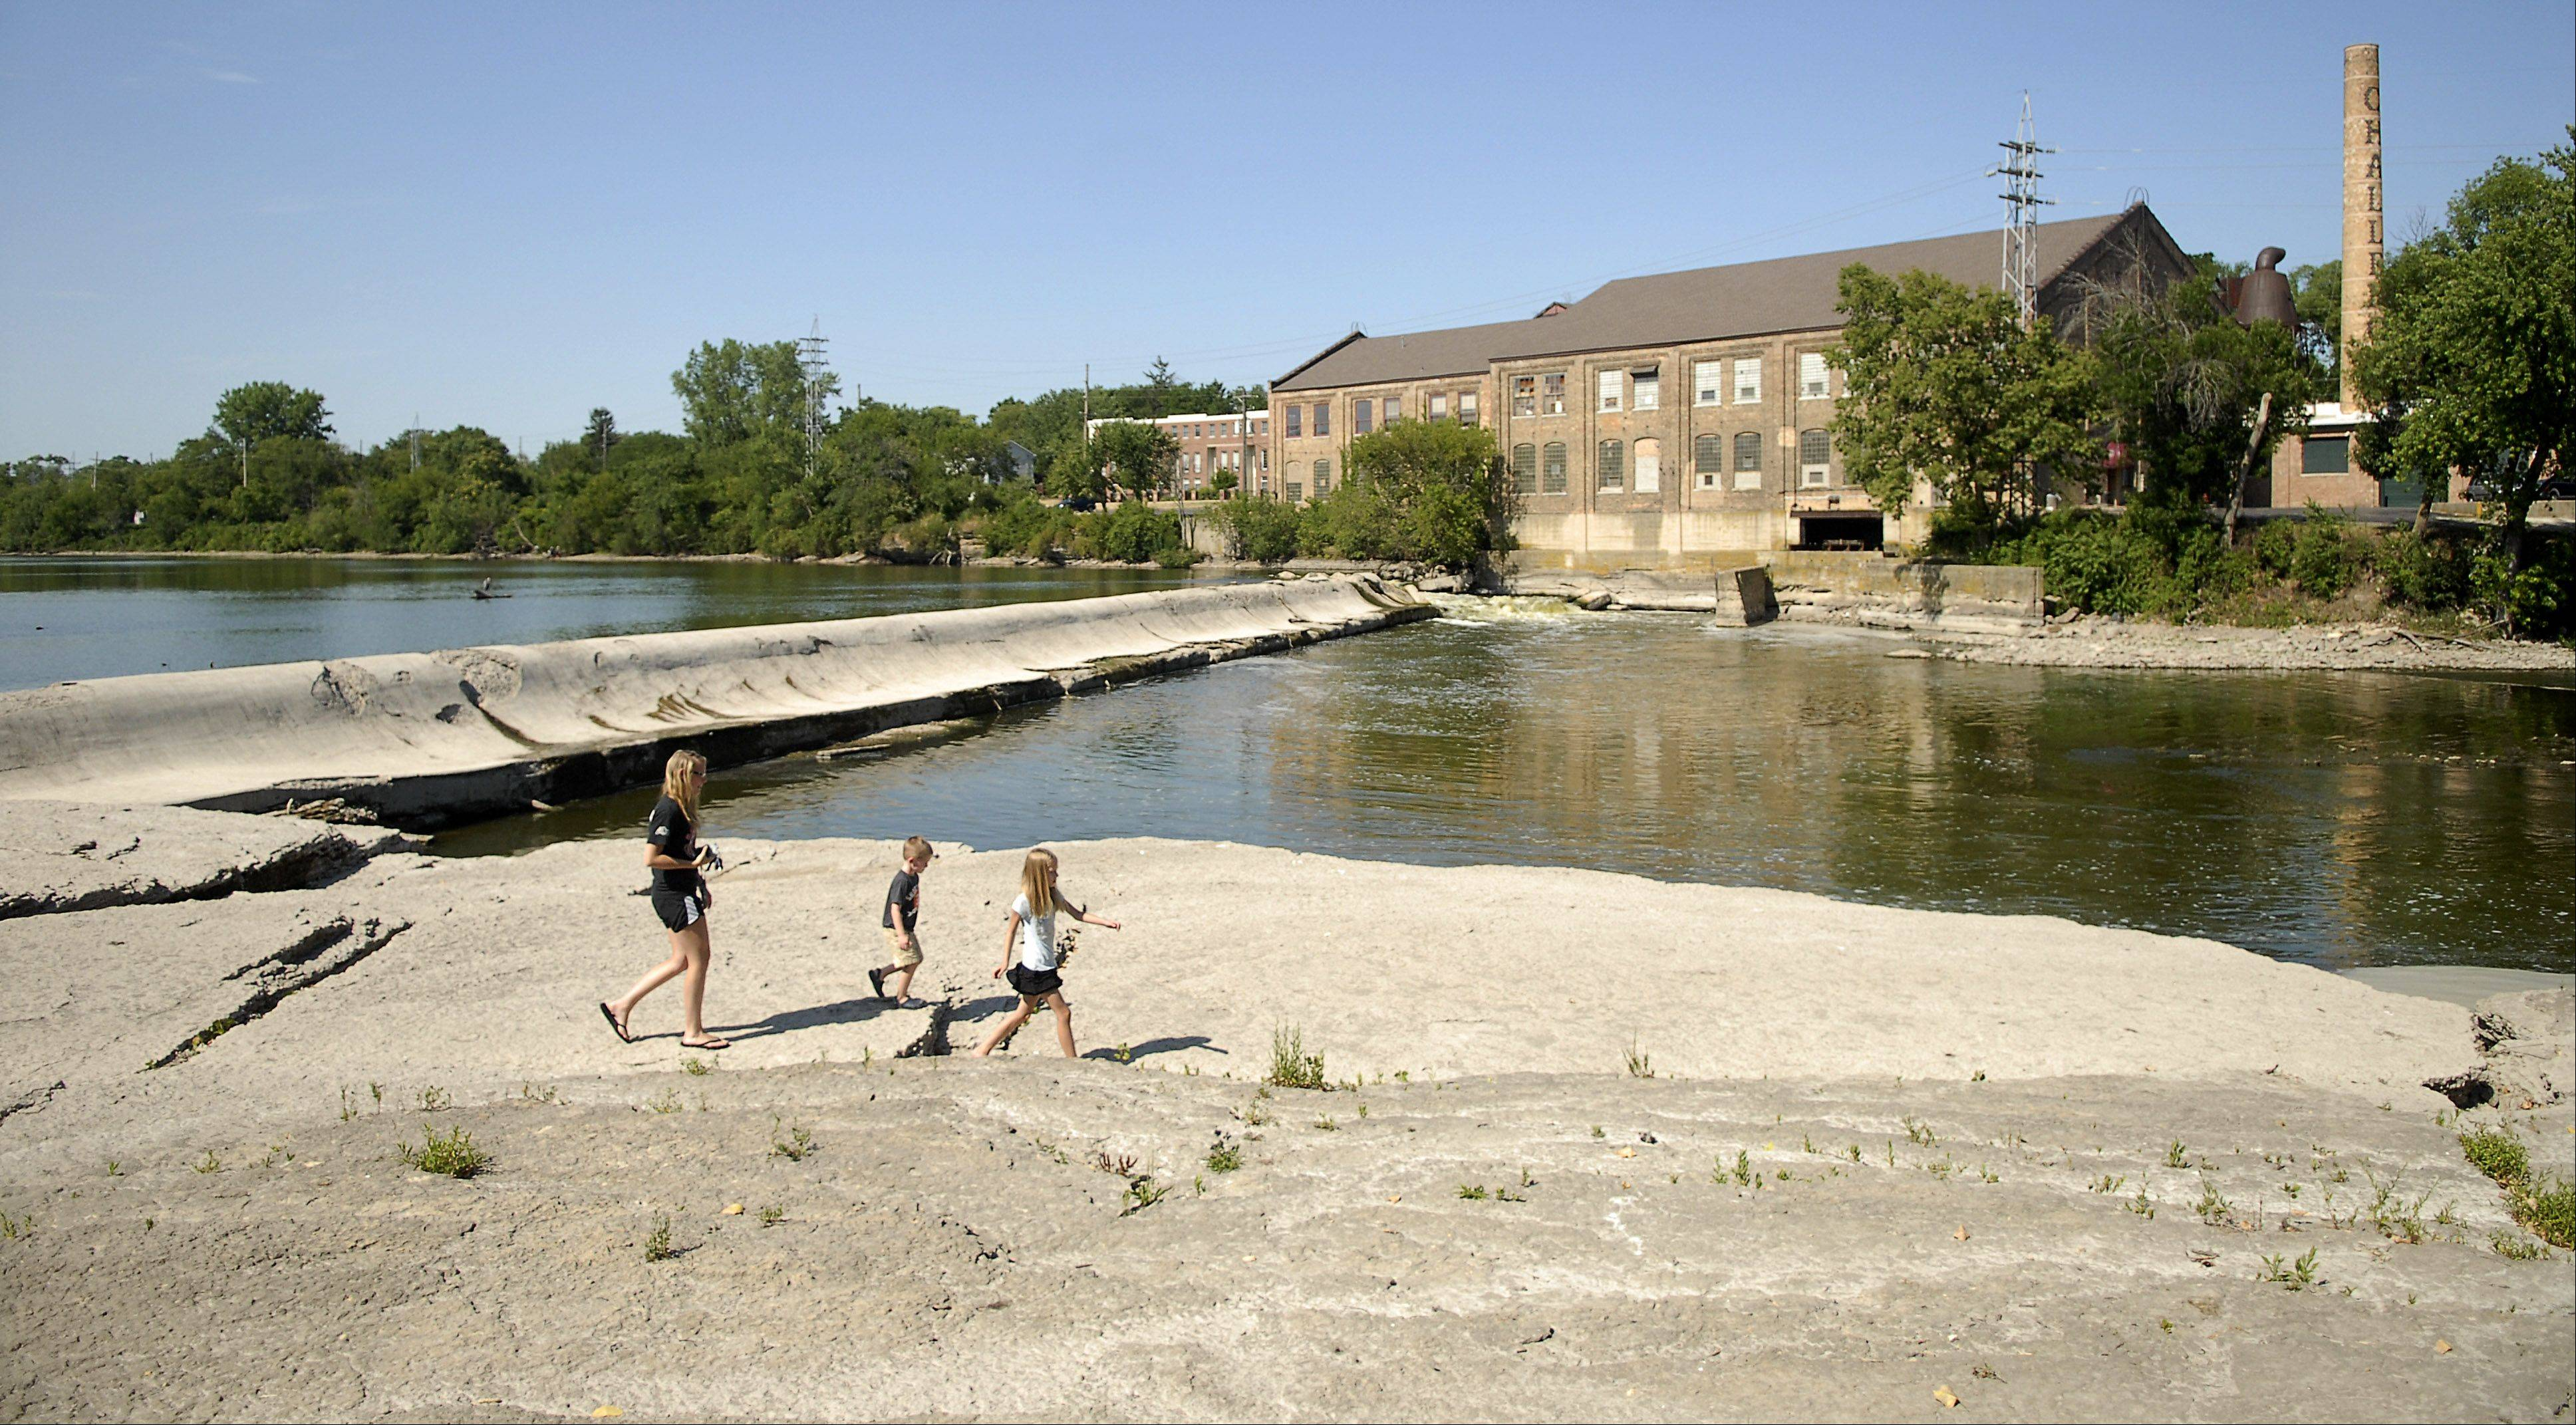 A family walks along an area that is normally under water near the Batavia dam along the Fox River. The area is parched due to the ongoing drought.